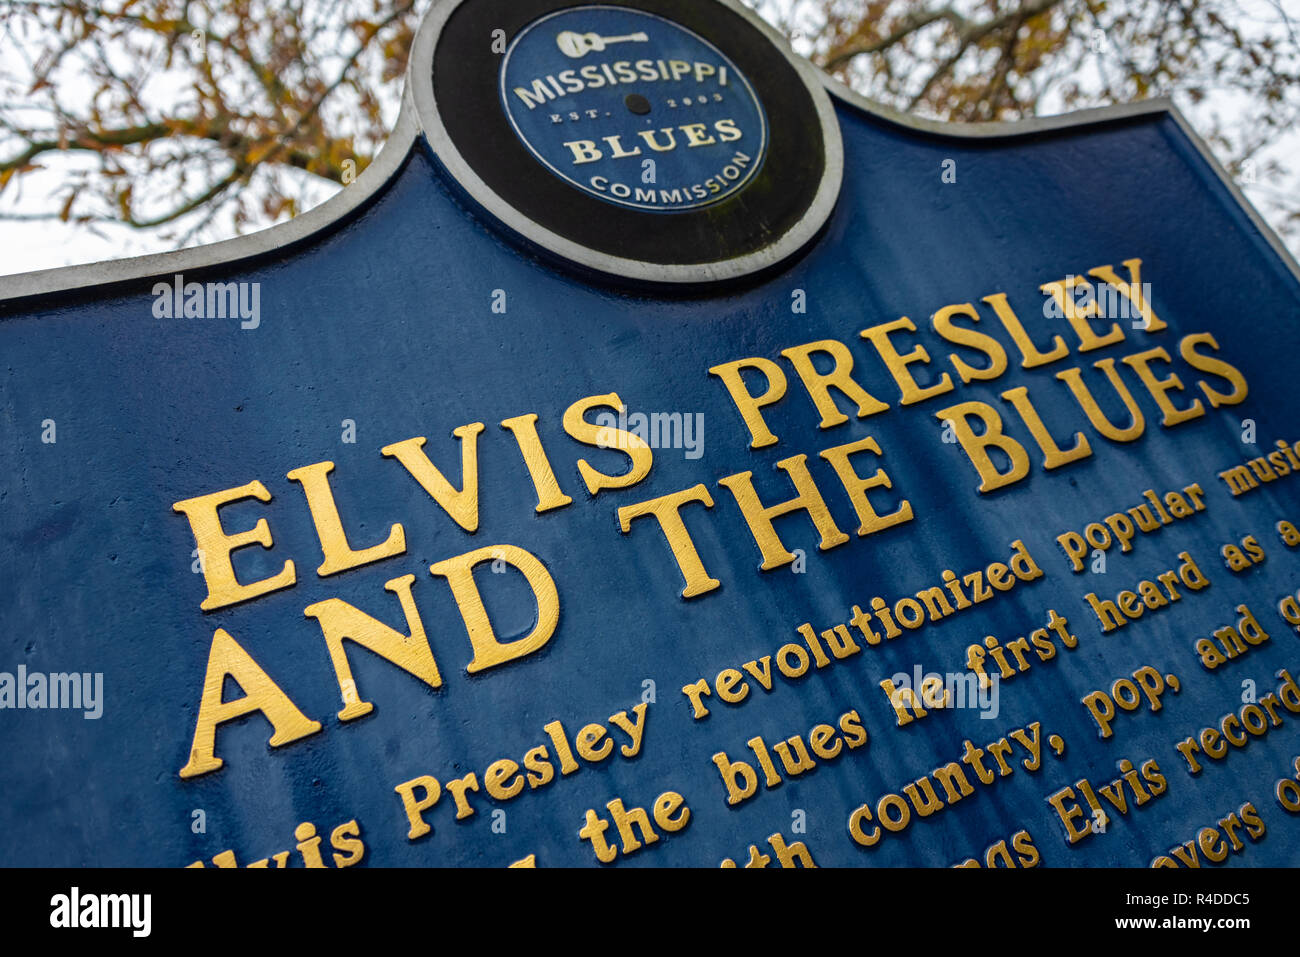 Mississippi Blues historical marker at the birthplace of Elvis Presley in Tupelo, Mississippi. (USA) - Stock Image